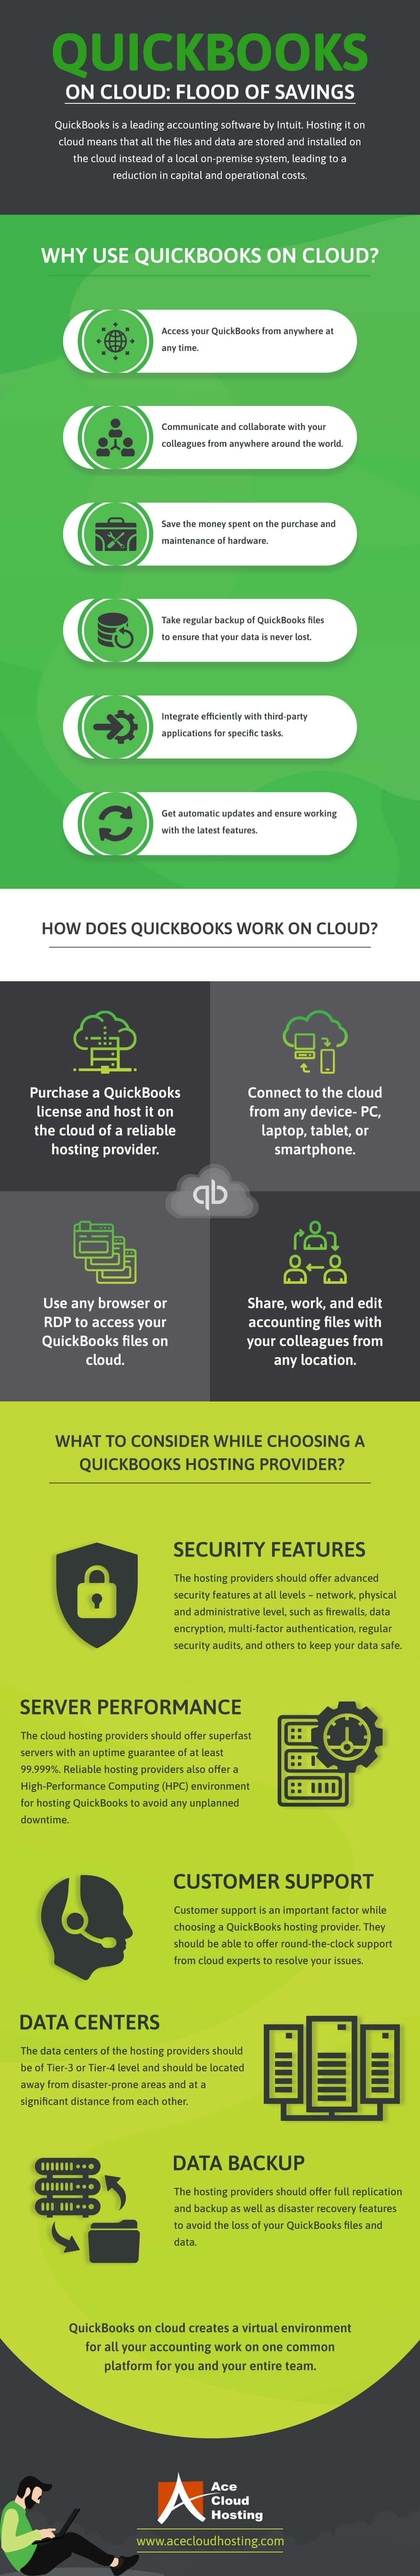 QuickBooks on Cloud Flood